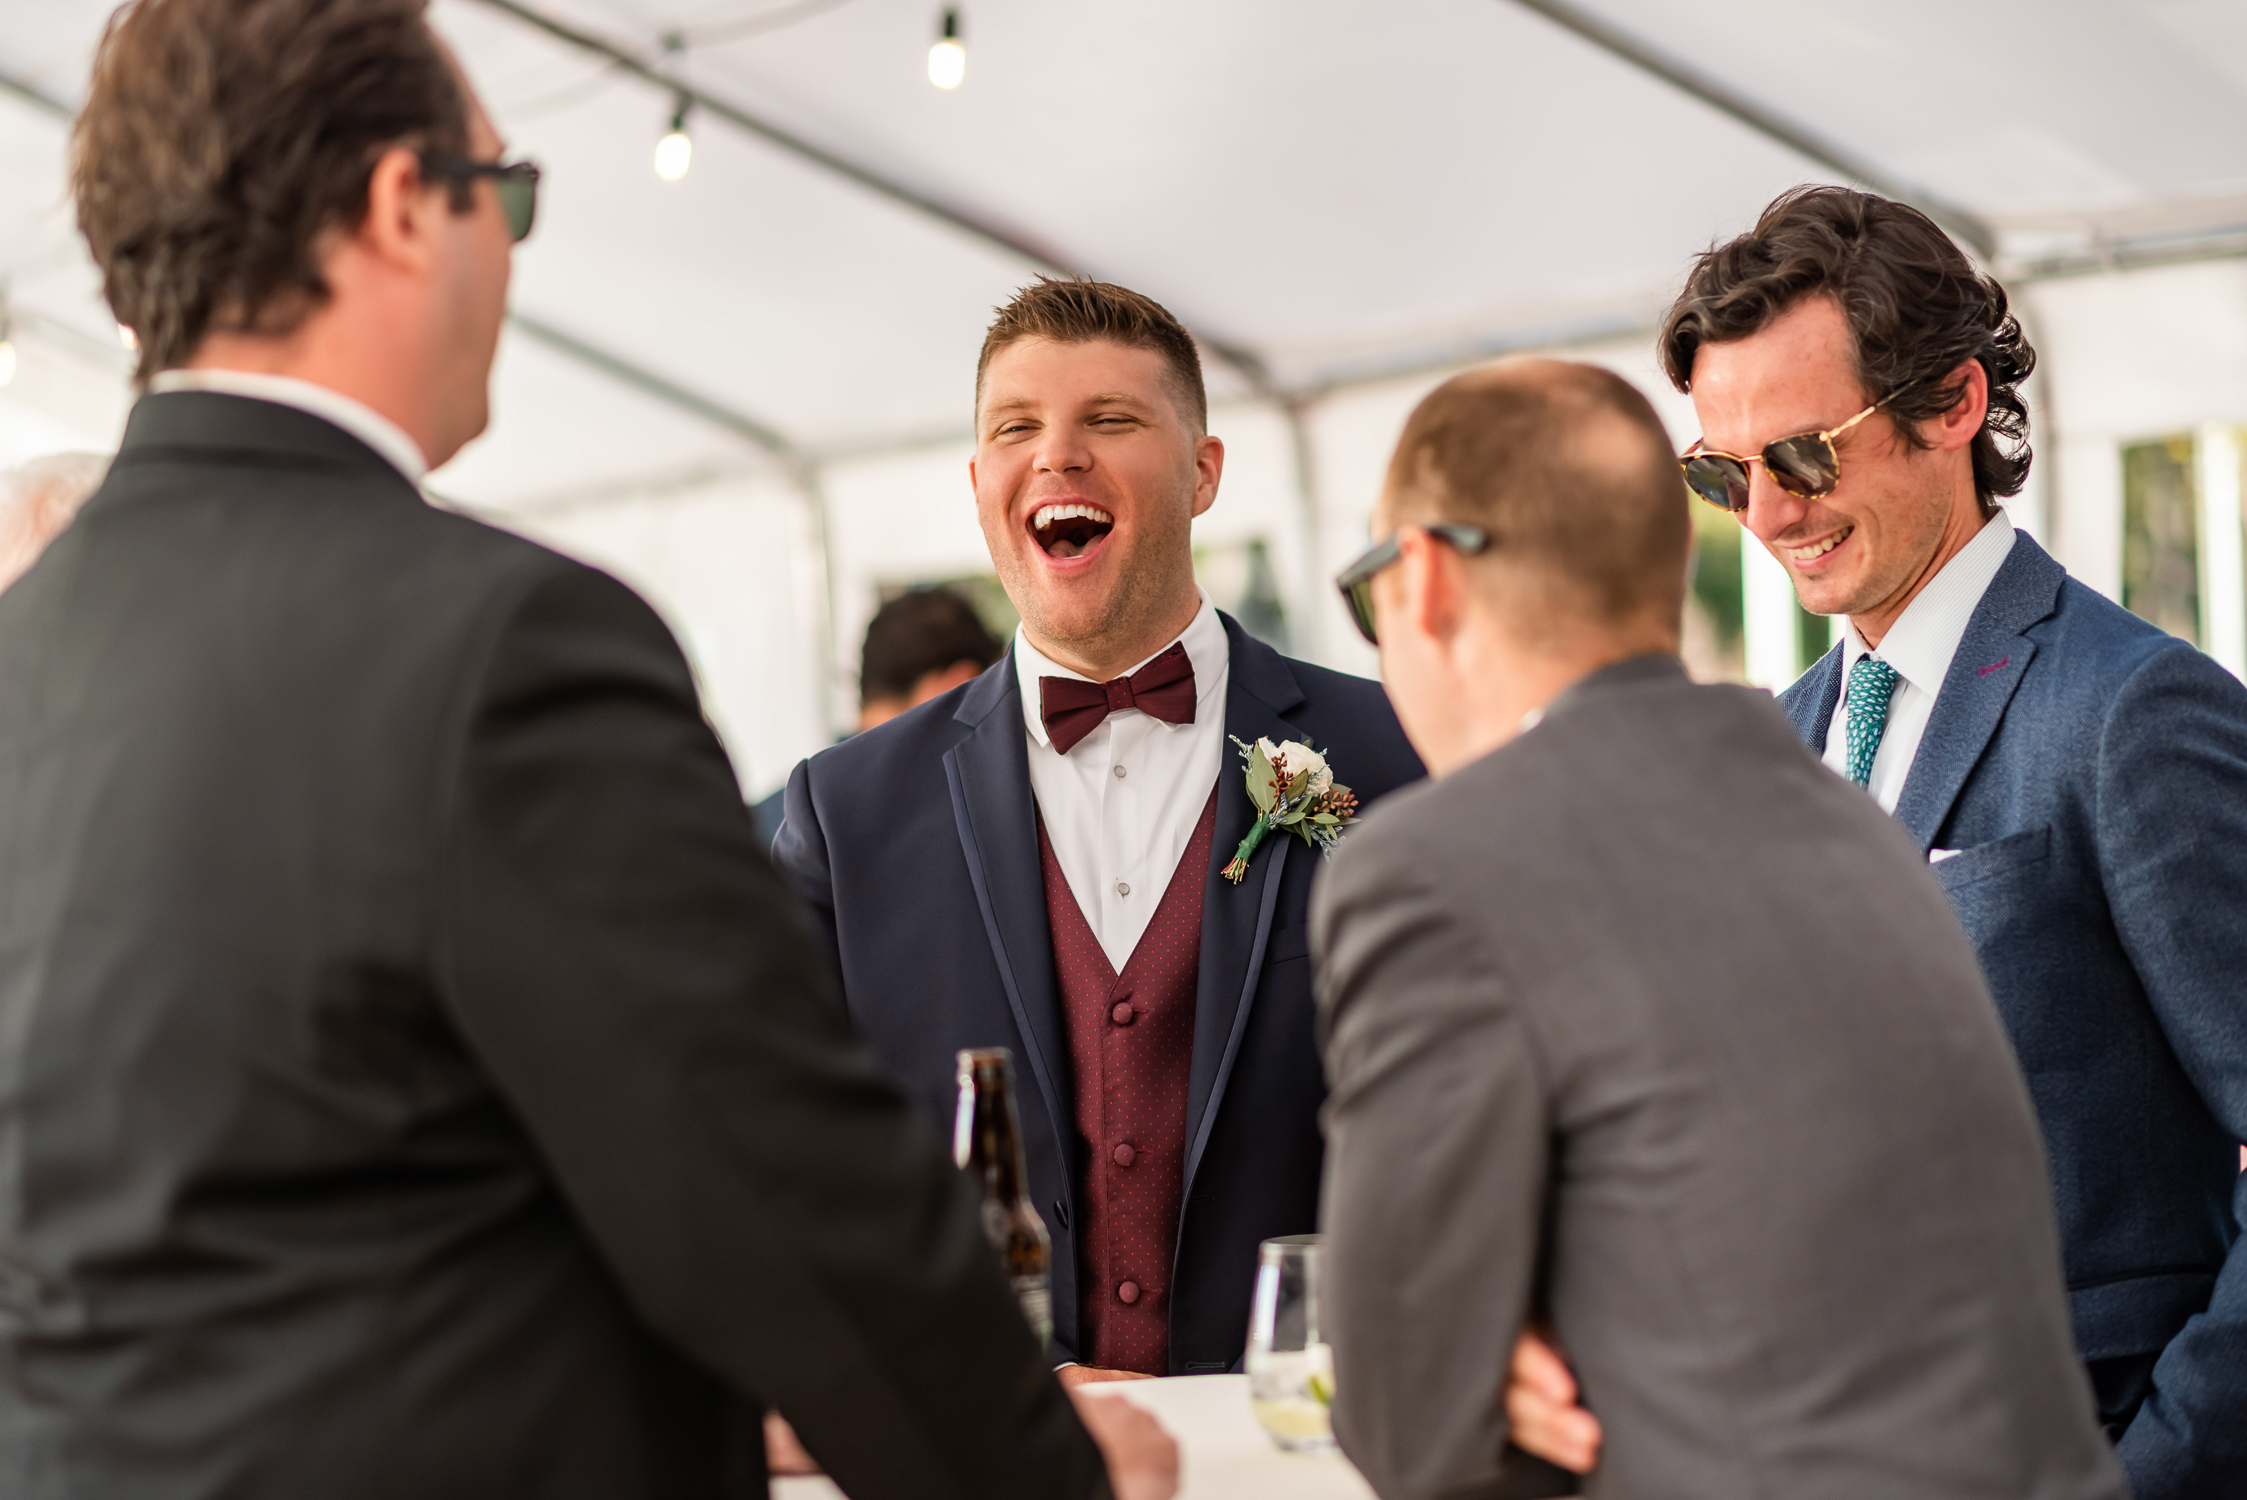 Emma_Cleary_Photo_and_Video_wedding_photos_0016